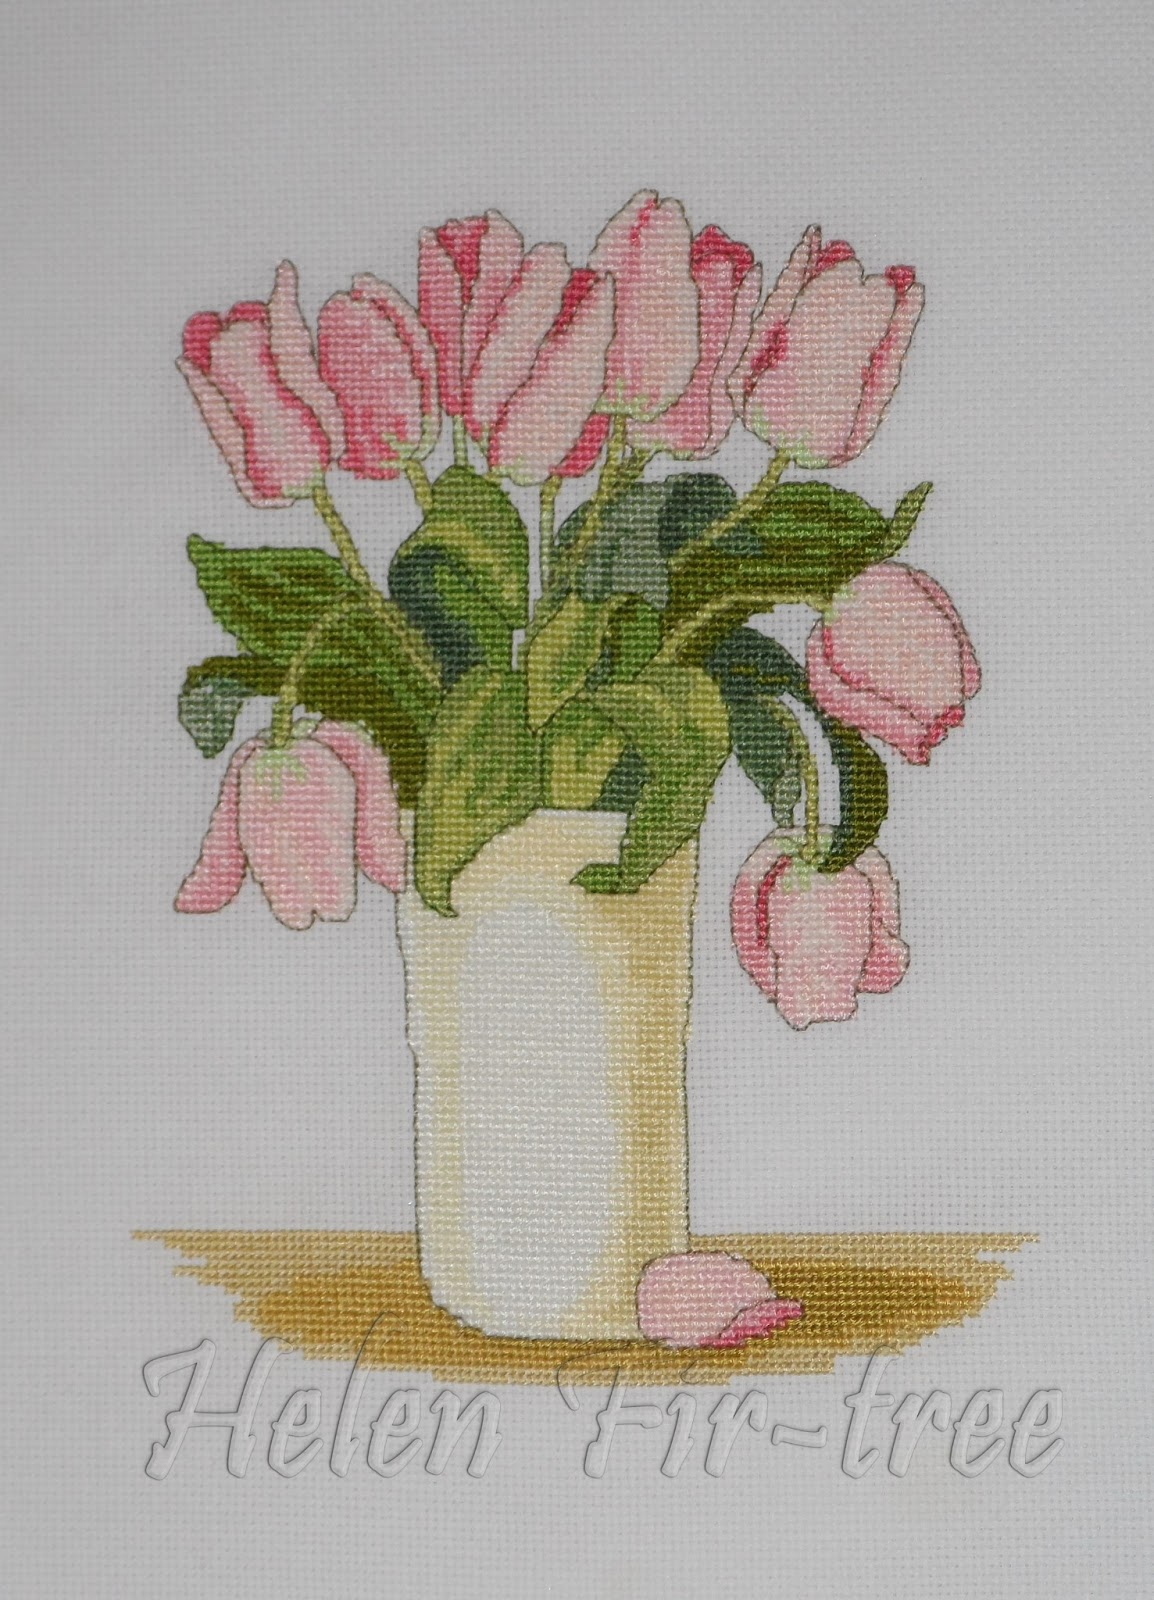 Helen Fir-tree вышивка крестом Tulips in a Vase counted cross stitch